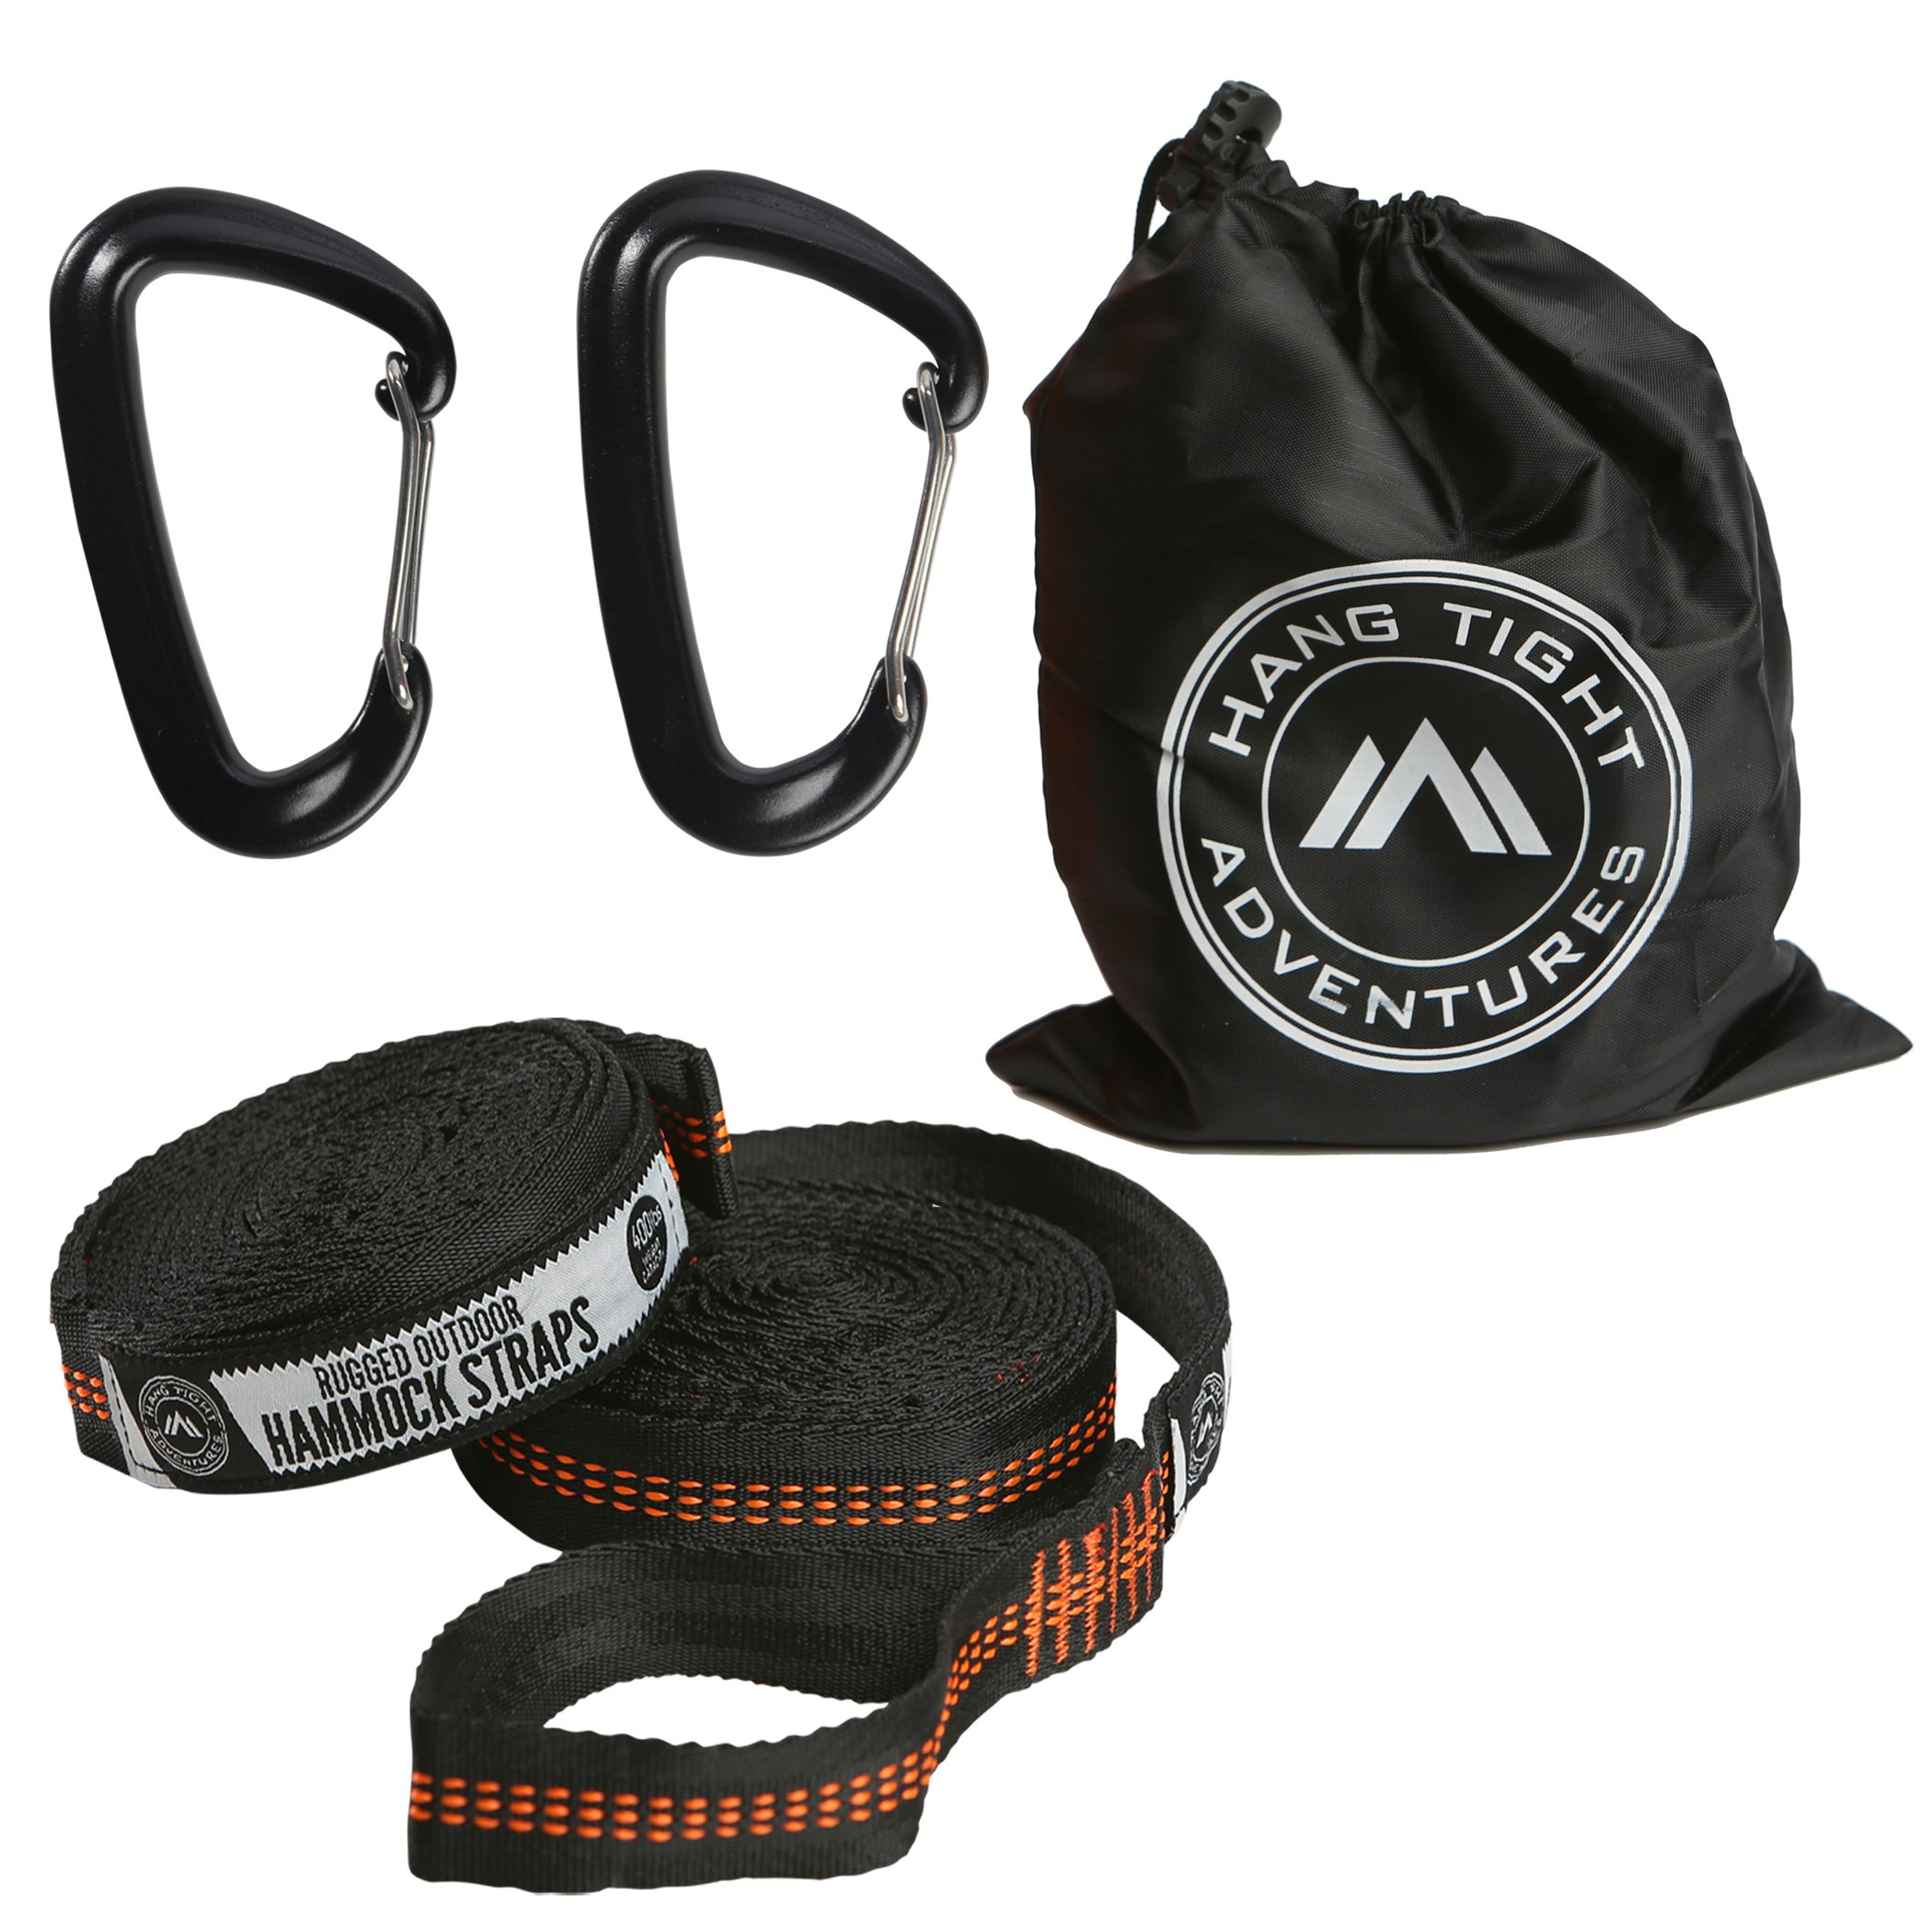 HangTight Adventures Rugged Hammocks Straps, Heavy Duty Tree Straps 800LB+ Weight Limit, 100% Performance graded suspension material, Plus + 2 Light weight Premium Hammock Carabiners